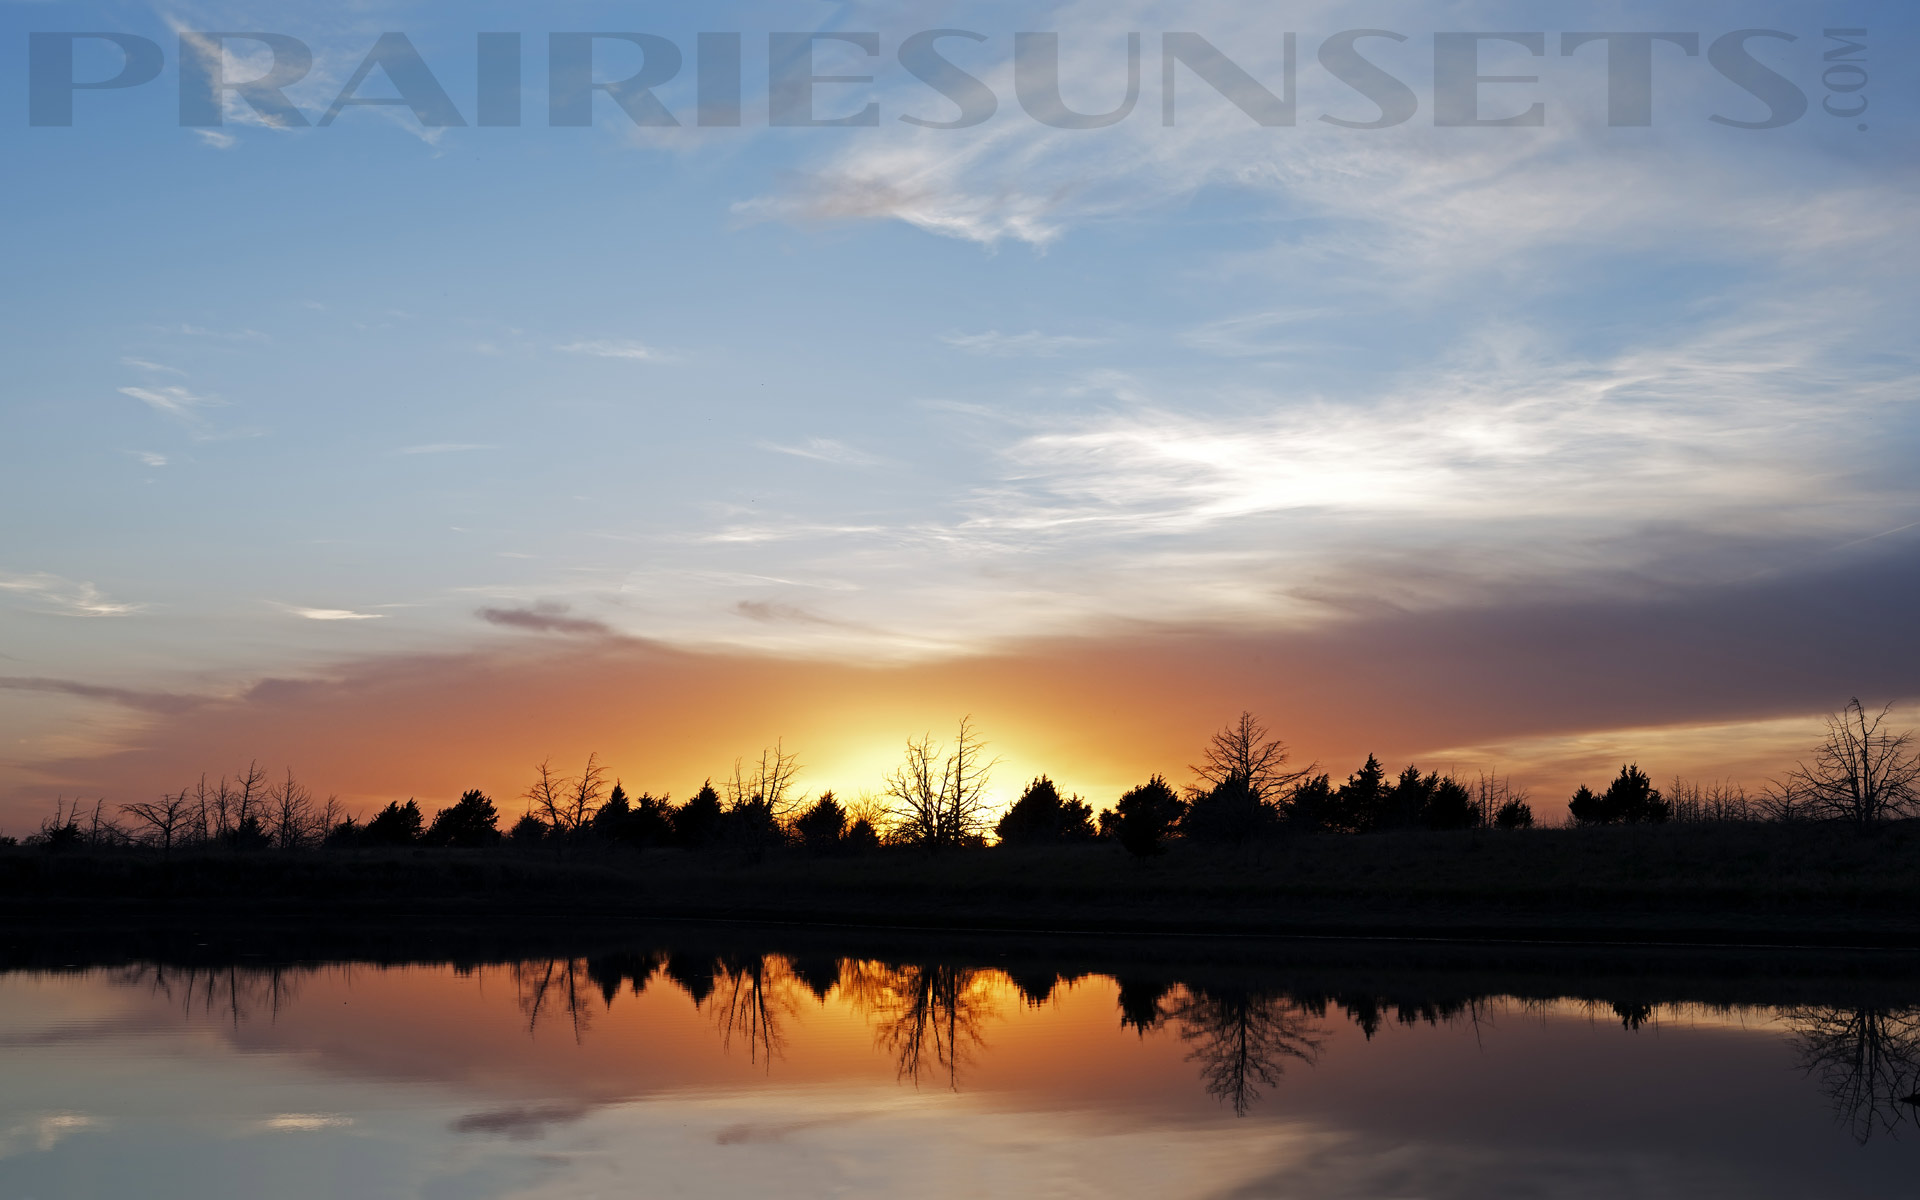 ... com - beautiful sunsets from the midwest wallpapers for your desktop